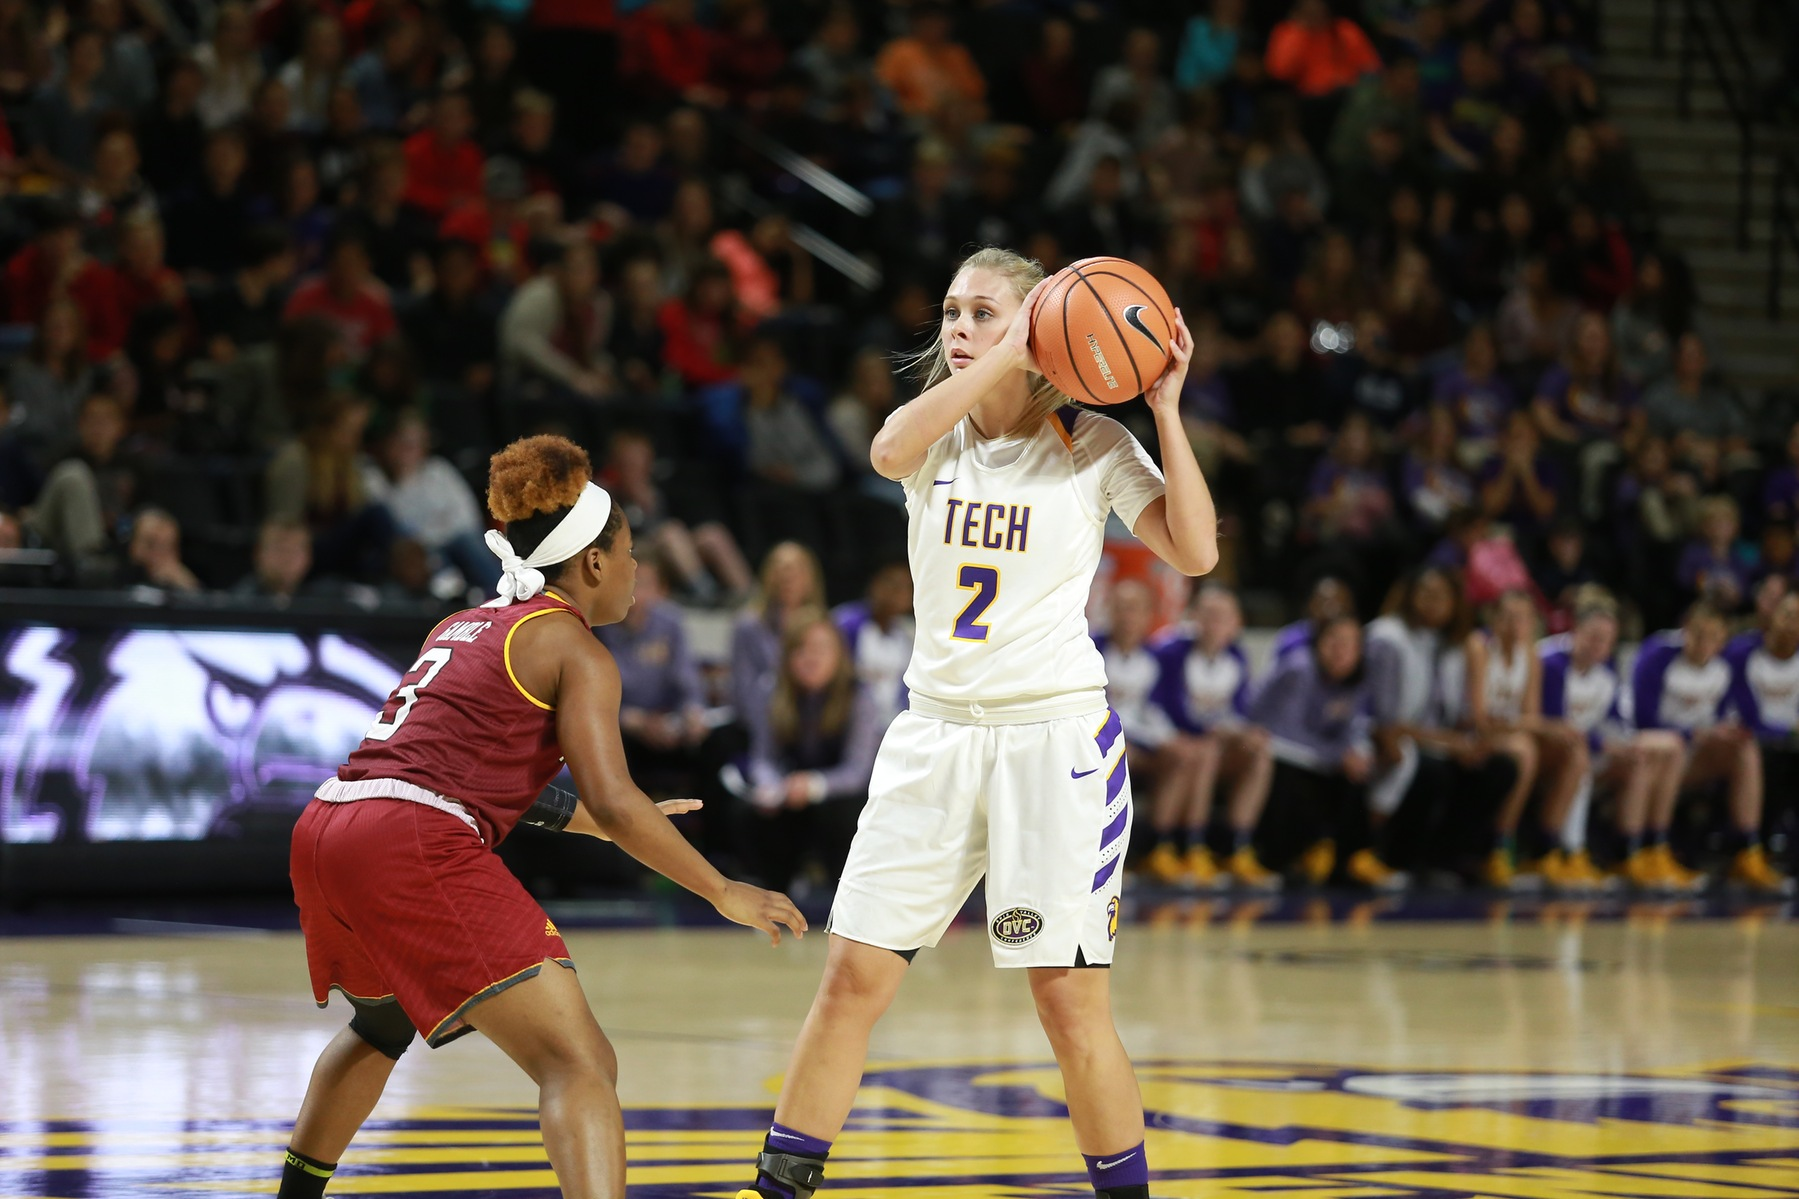 Tech ends lull with improved win over Winthrop